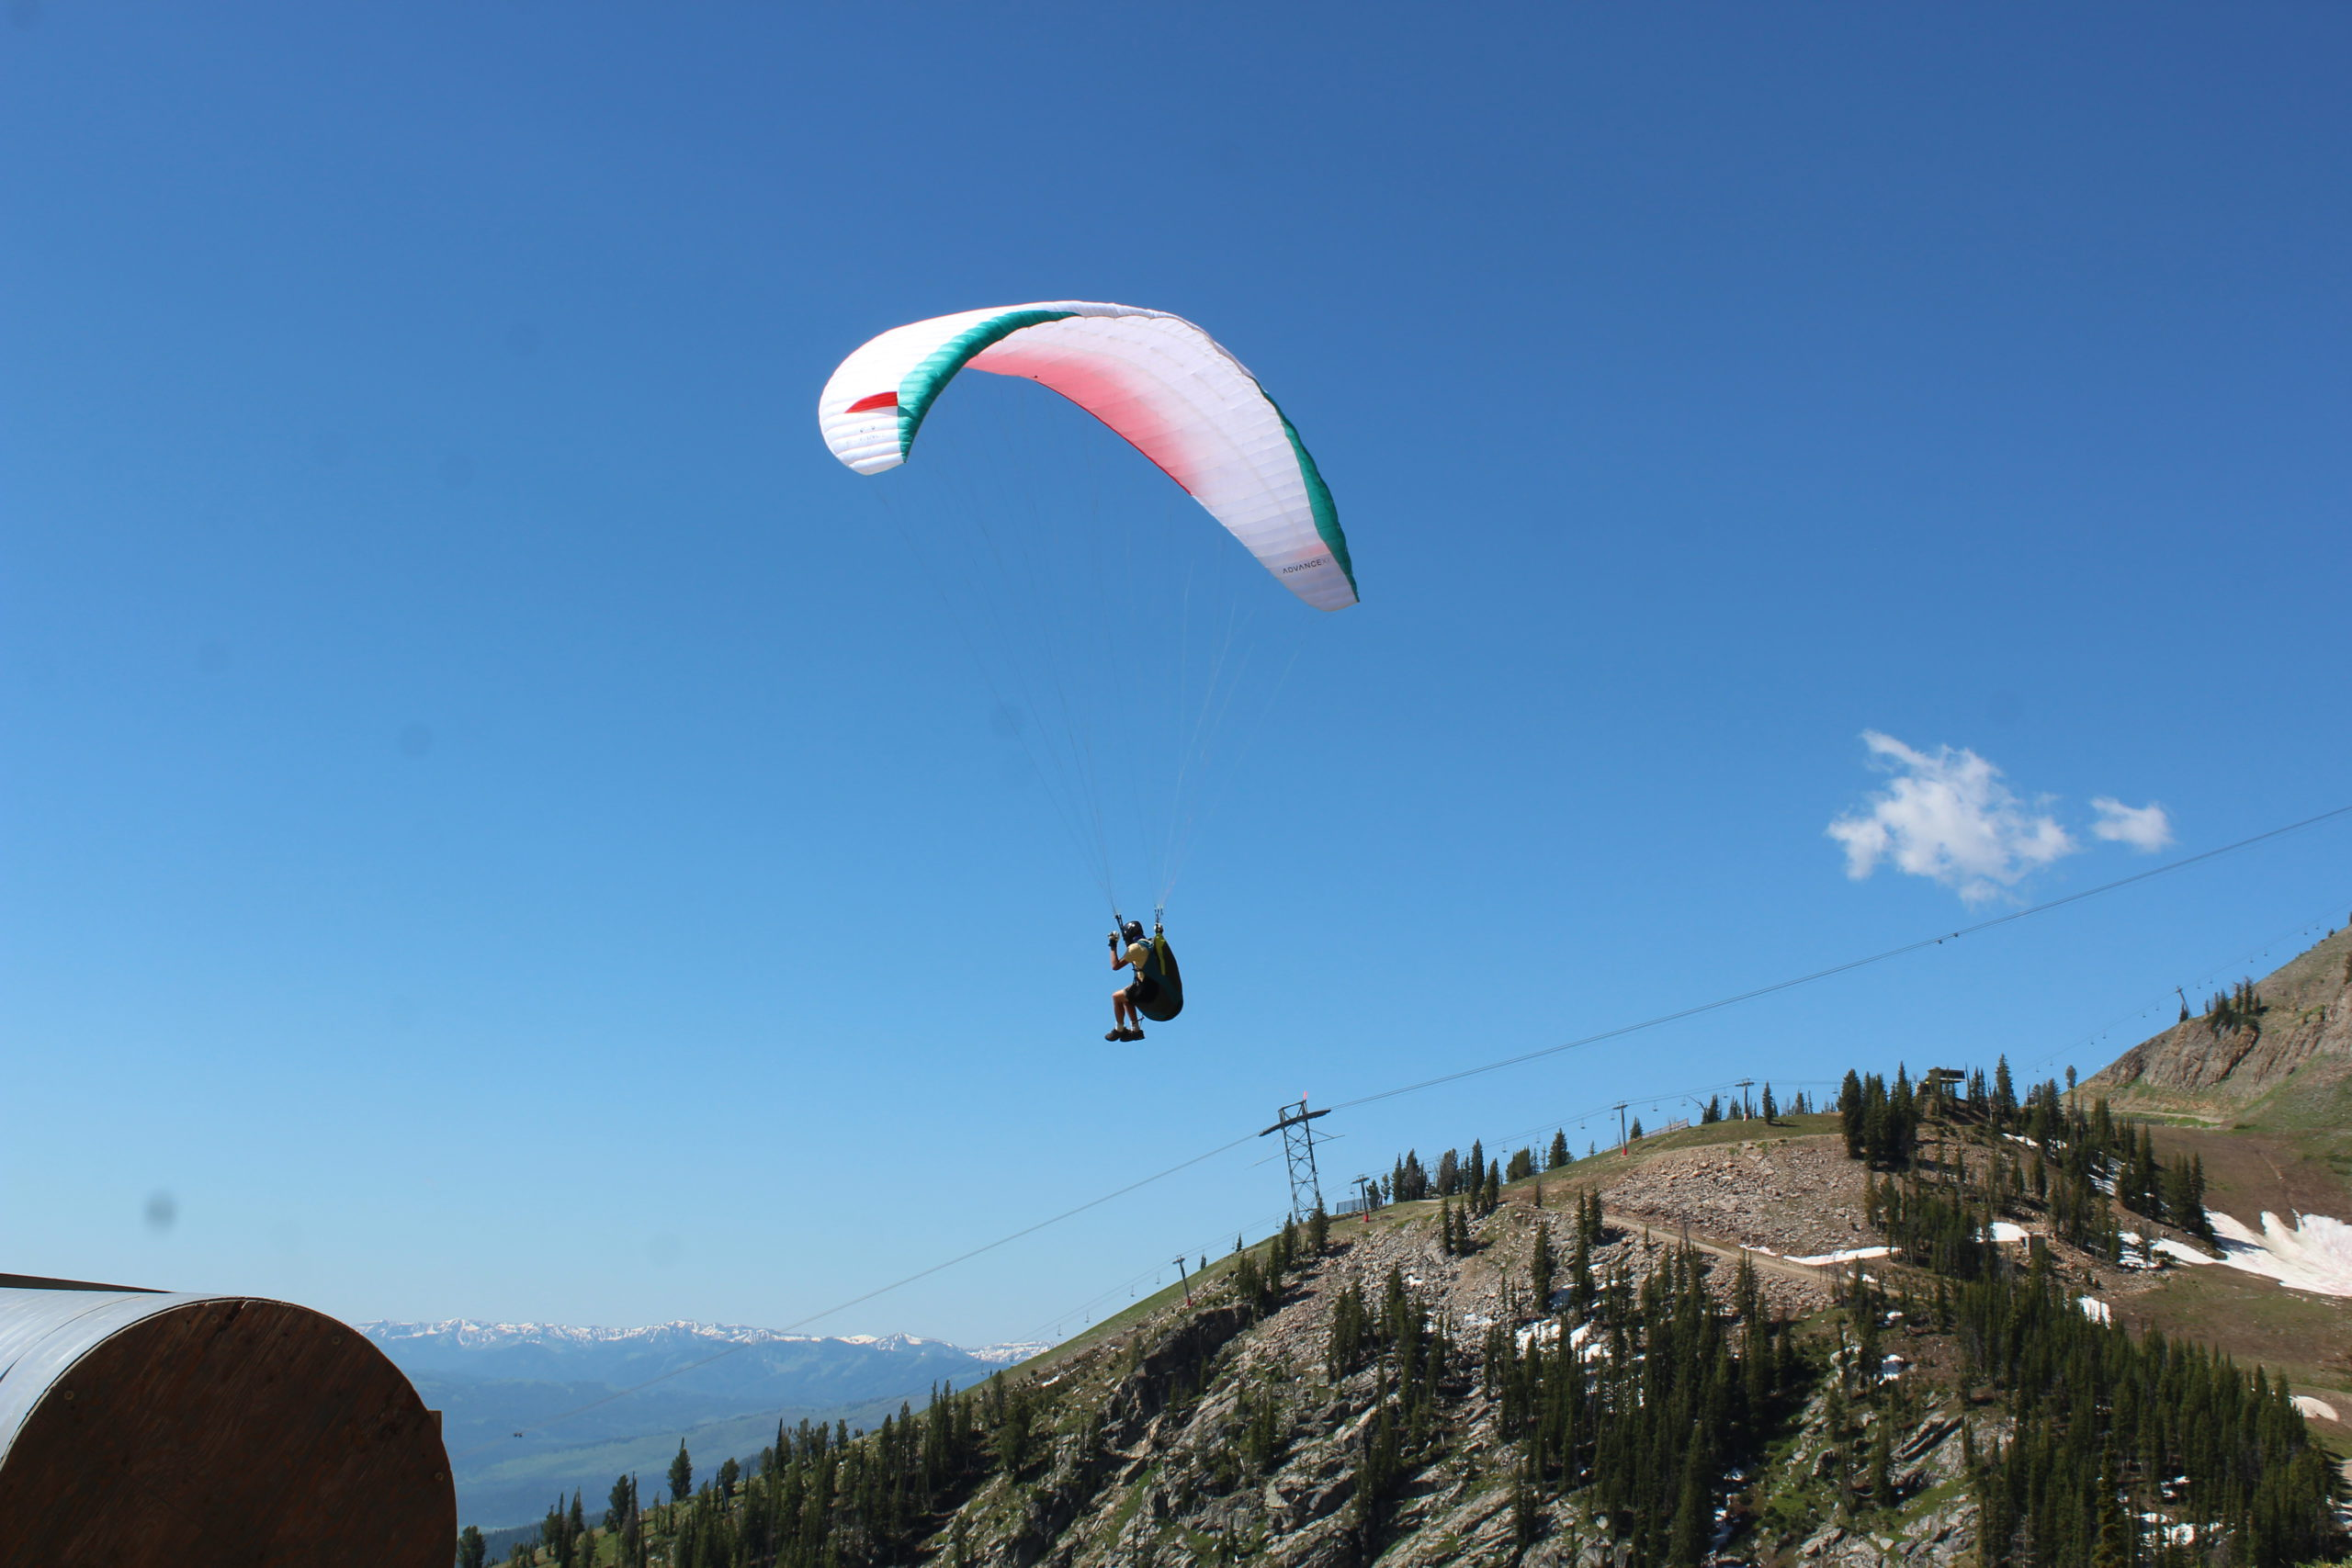 Hang Gliding from top of the gondola at Jackson Hole Mountain Resort